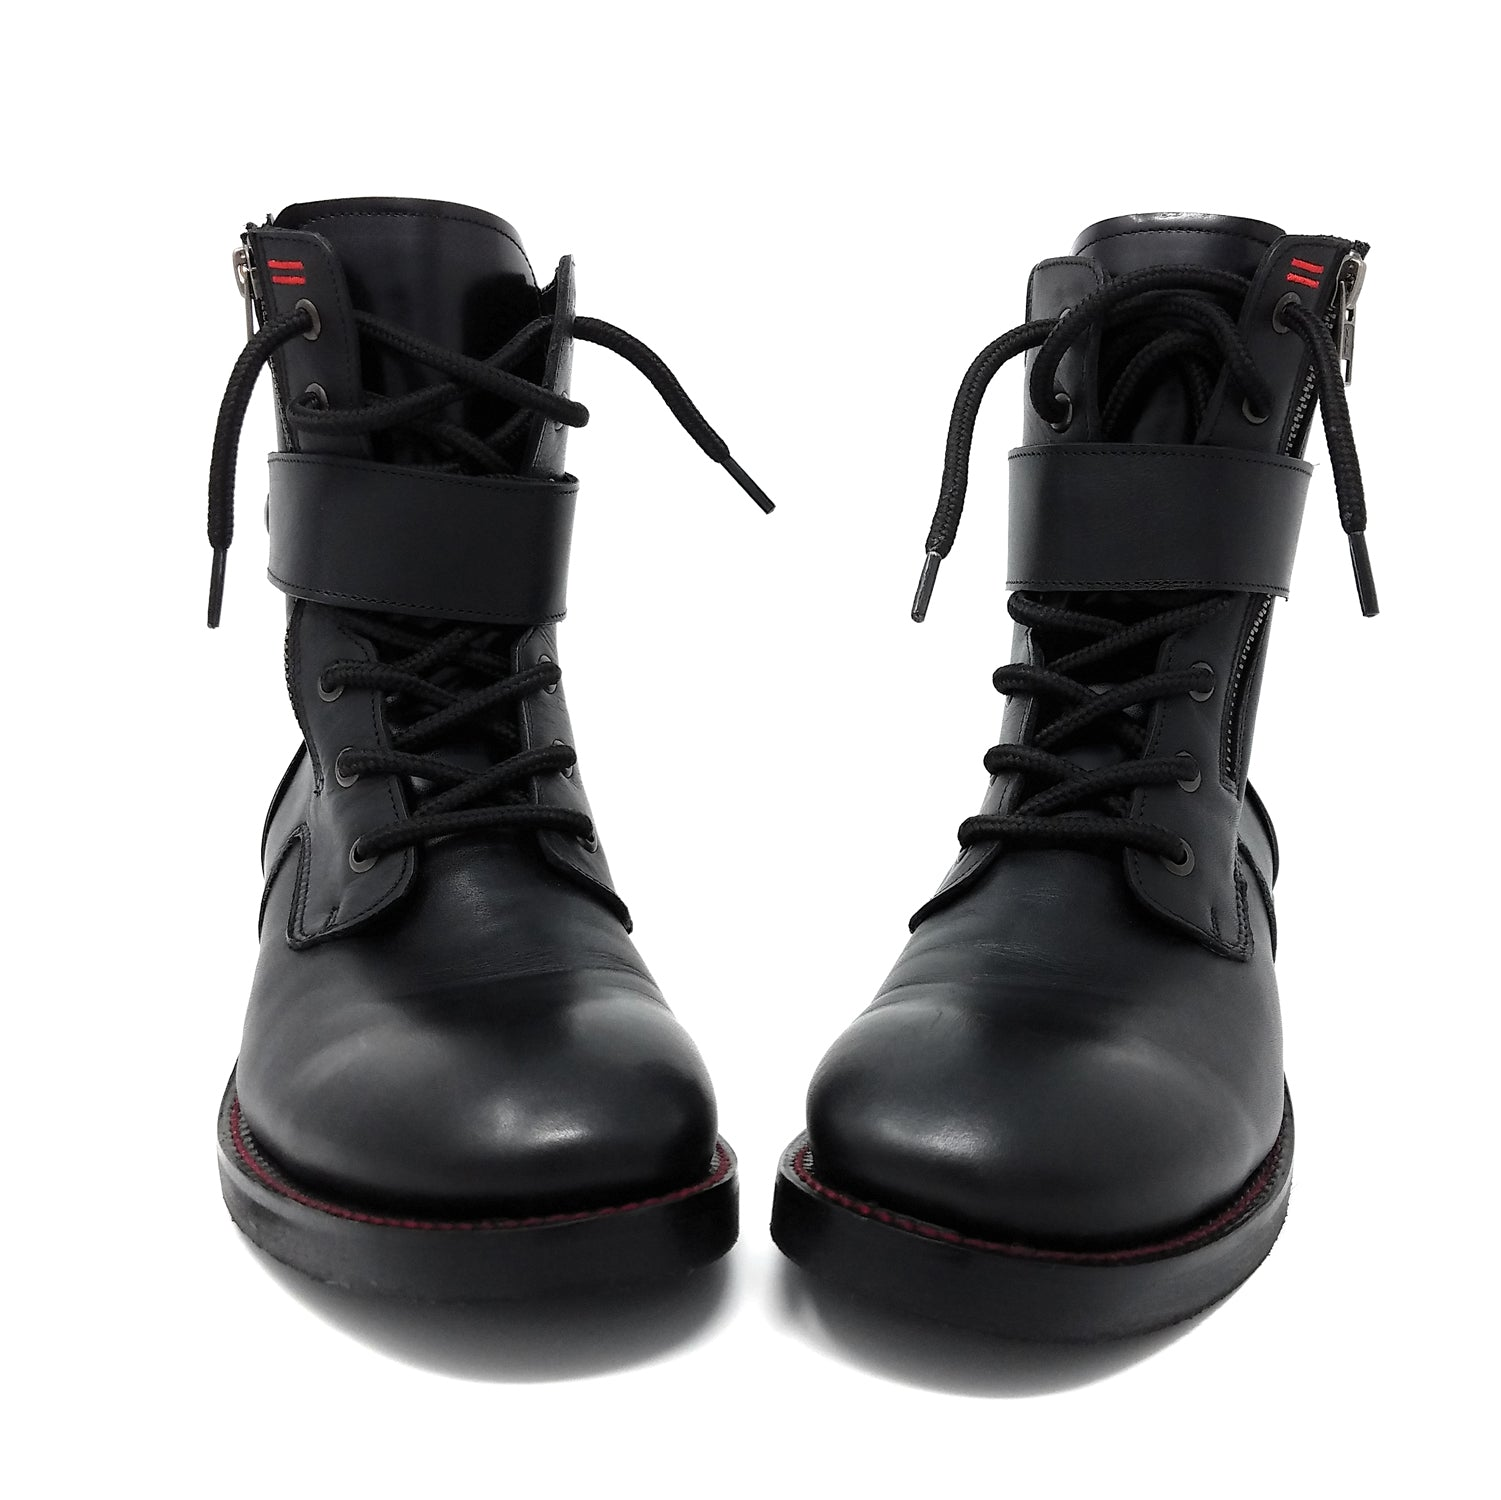 The Combat H8 Boots - NiK Kacy